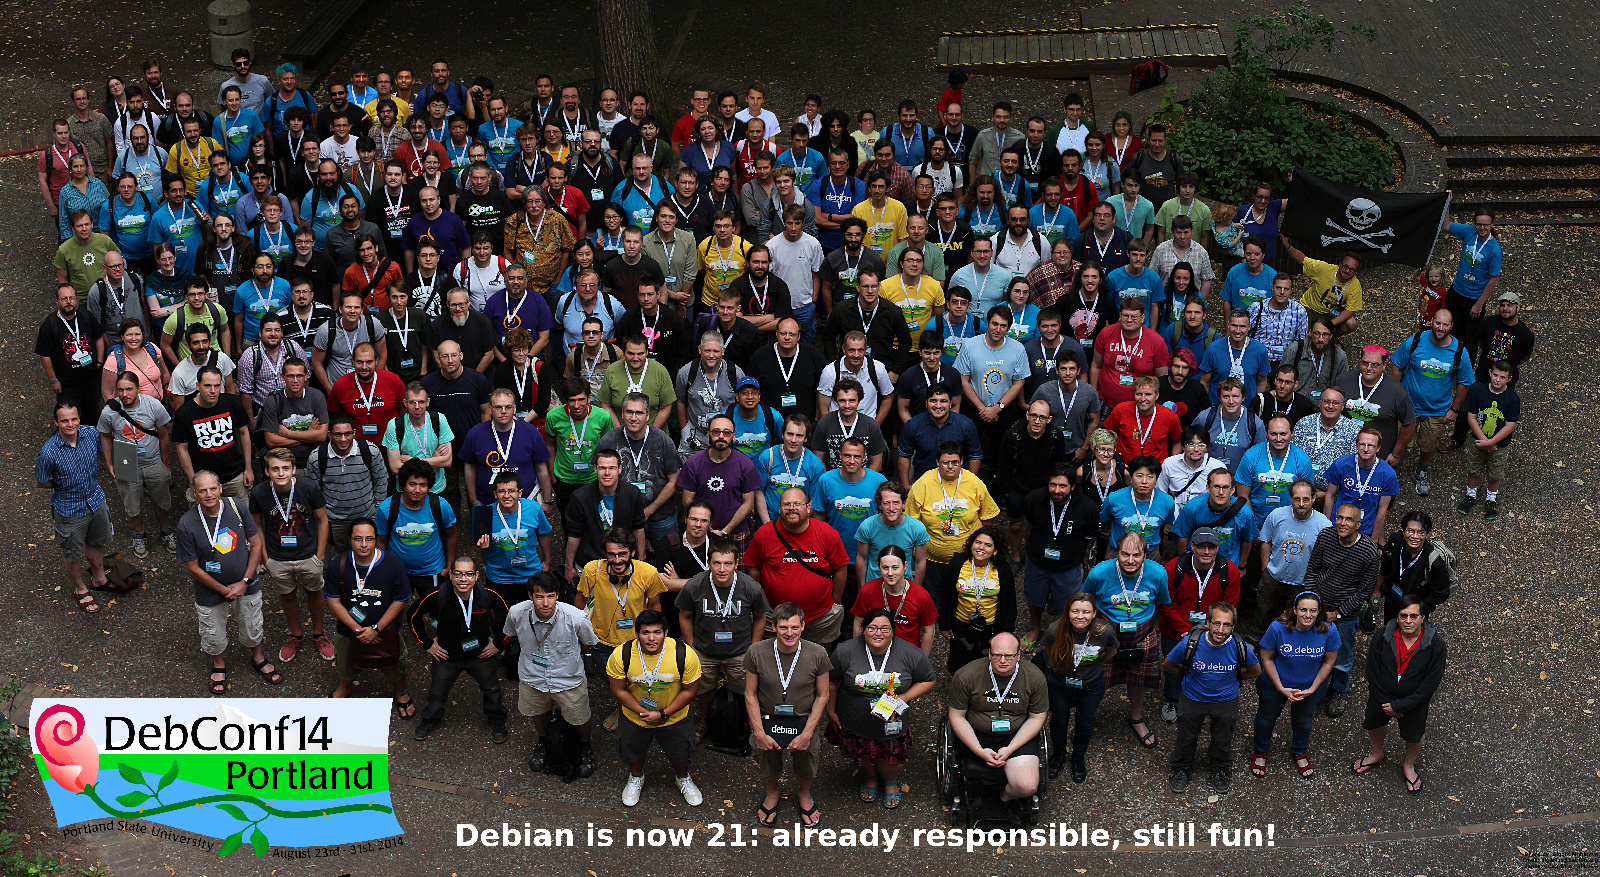 debconf14_group_0